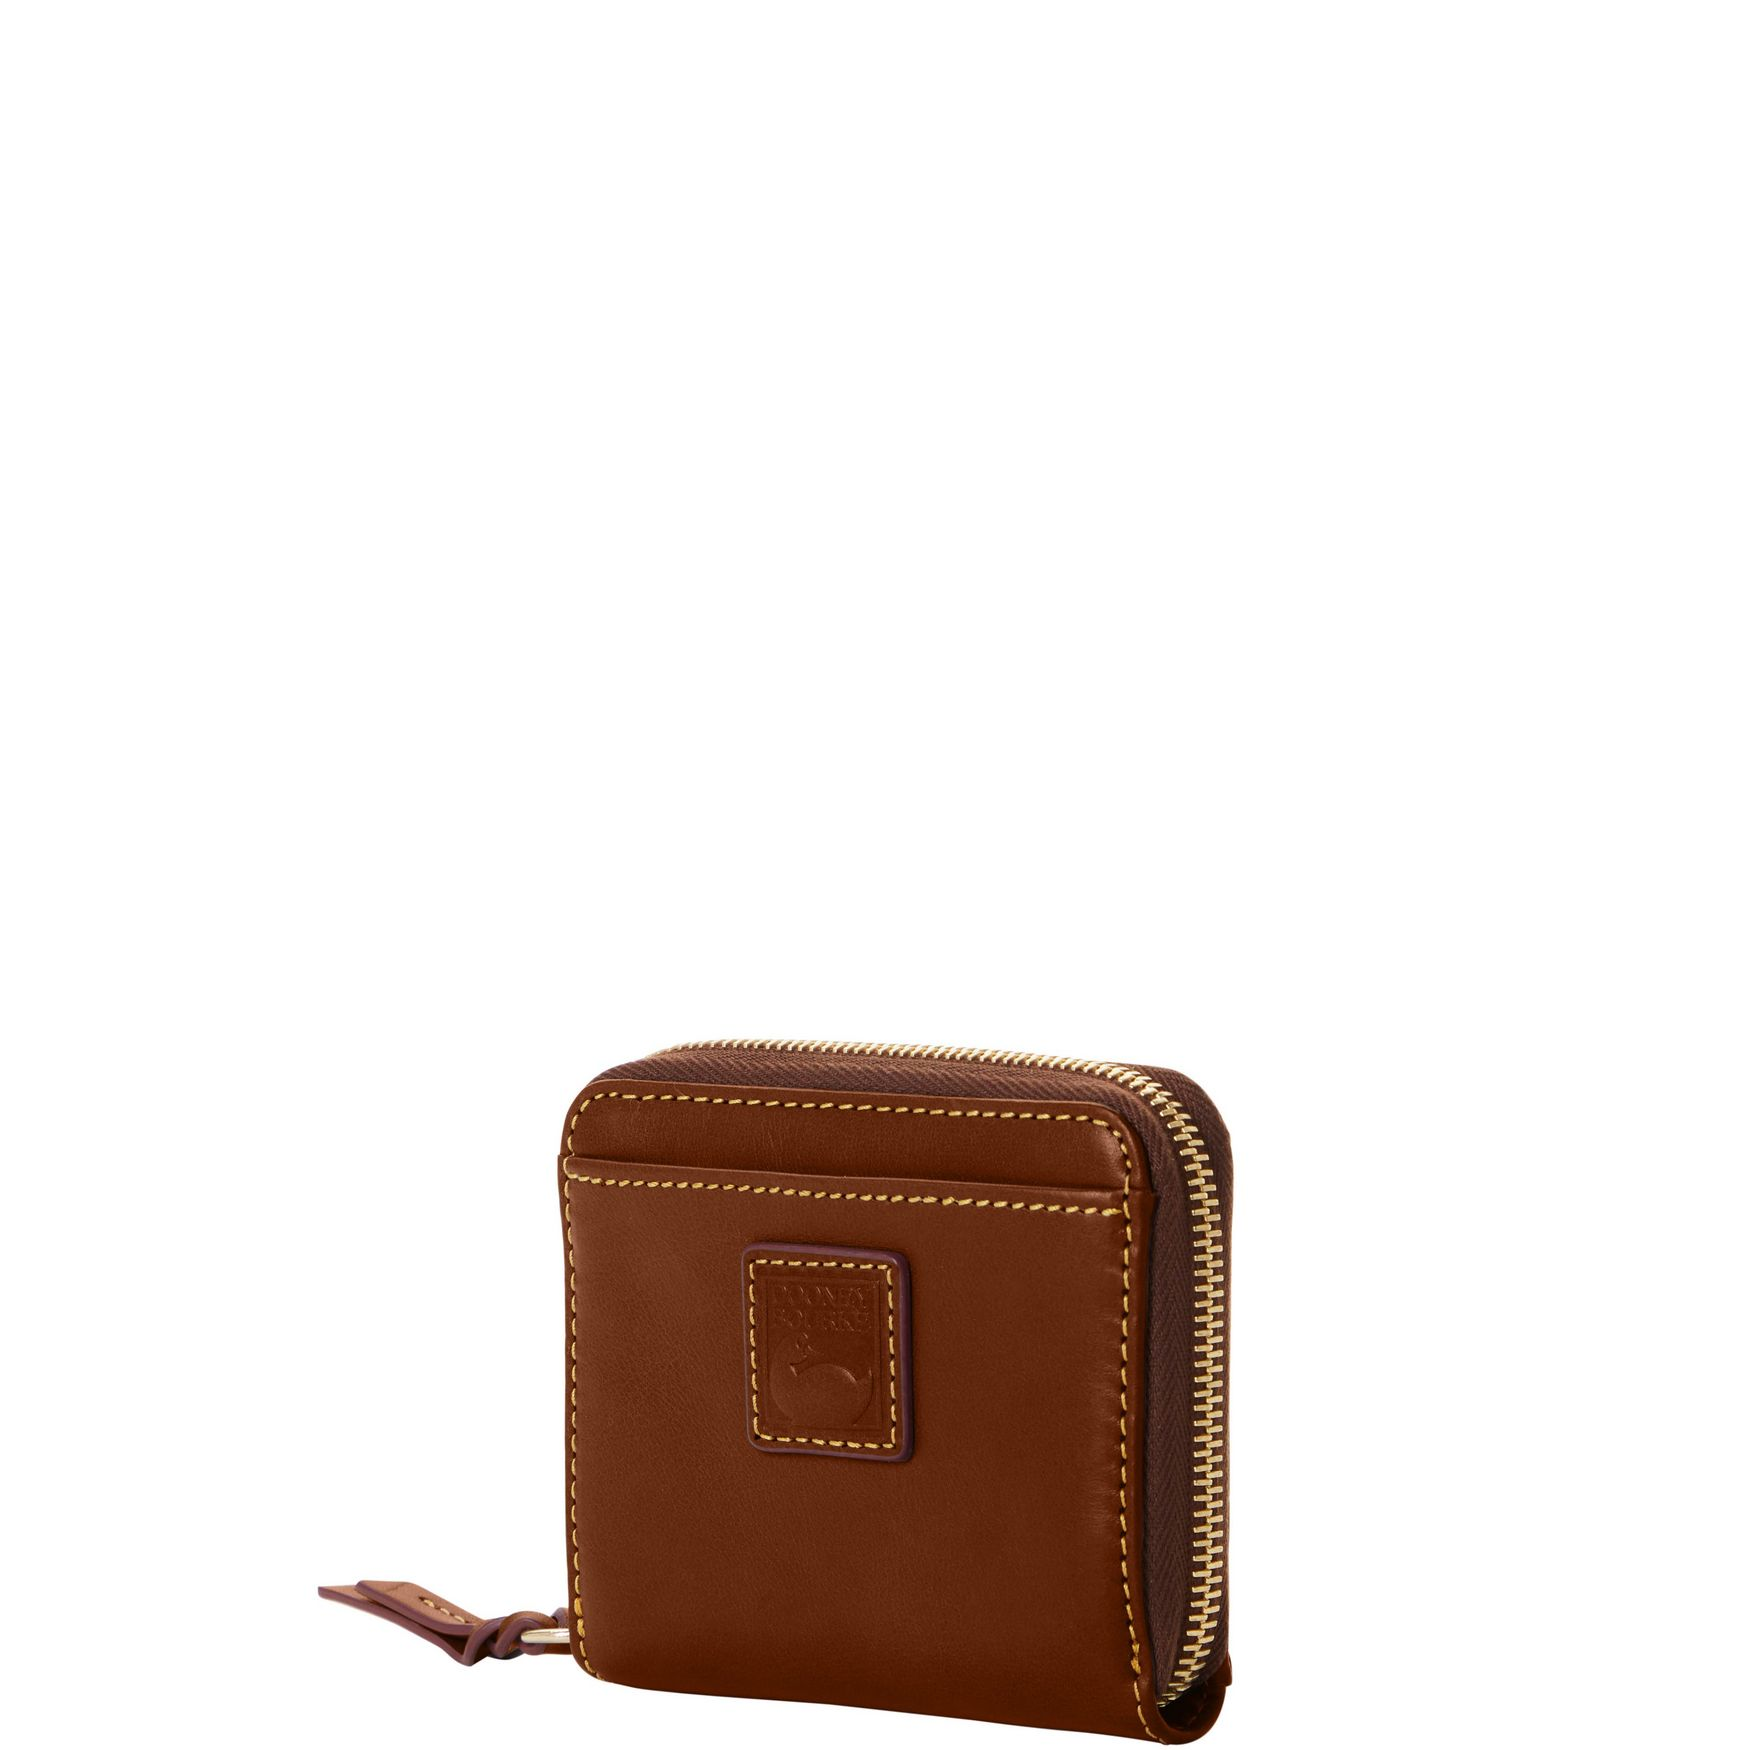 Dooney-amp-Bourke-Florentine-Small-Zip-Around-Wallet thumbnail 8